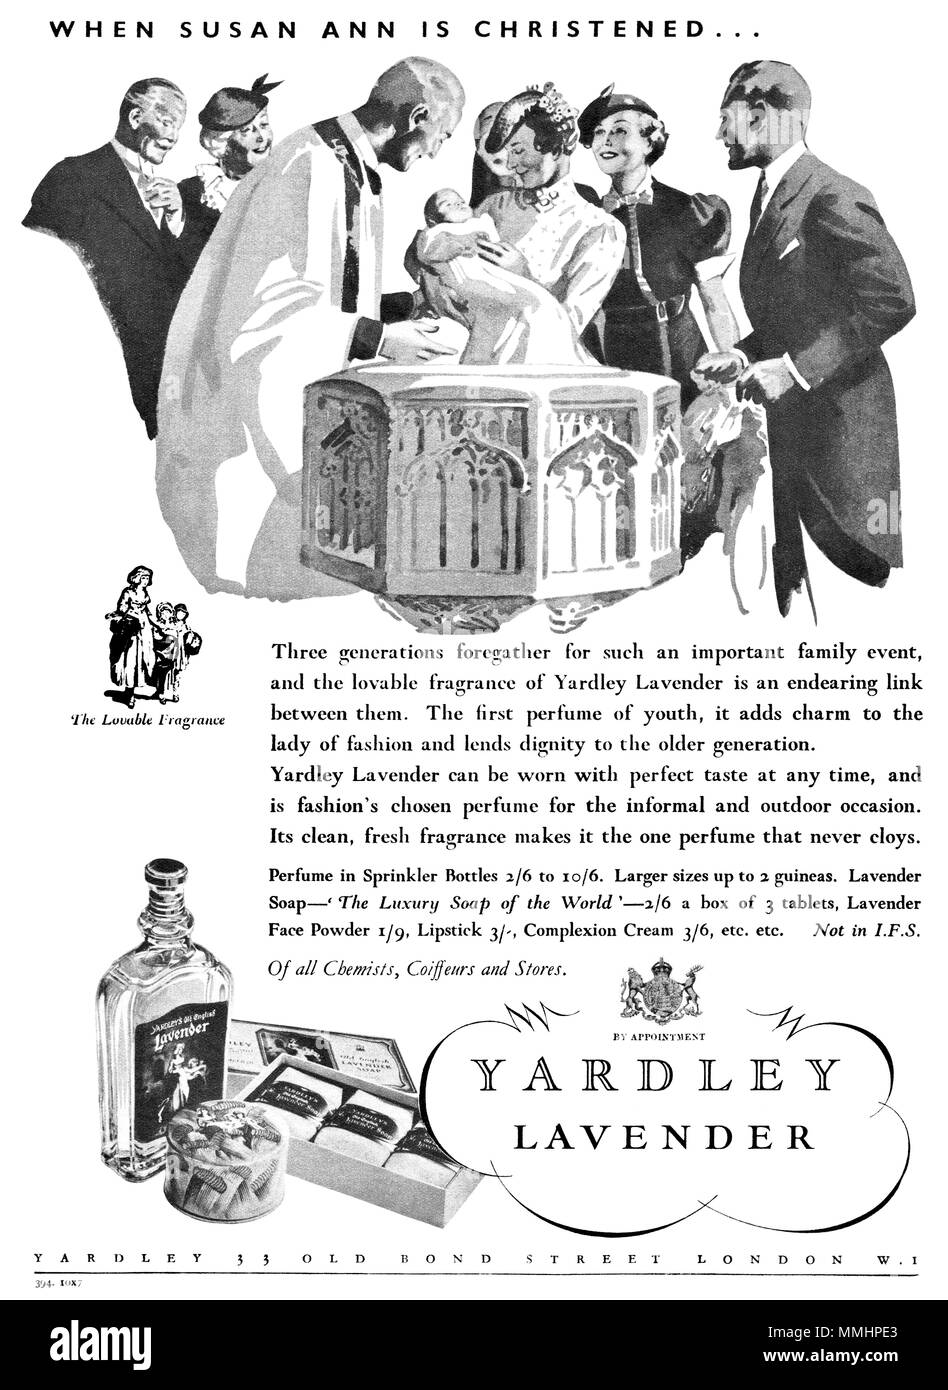 1936 British advertisement for Yardley Lavender perfume. - Stock Image